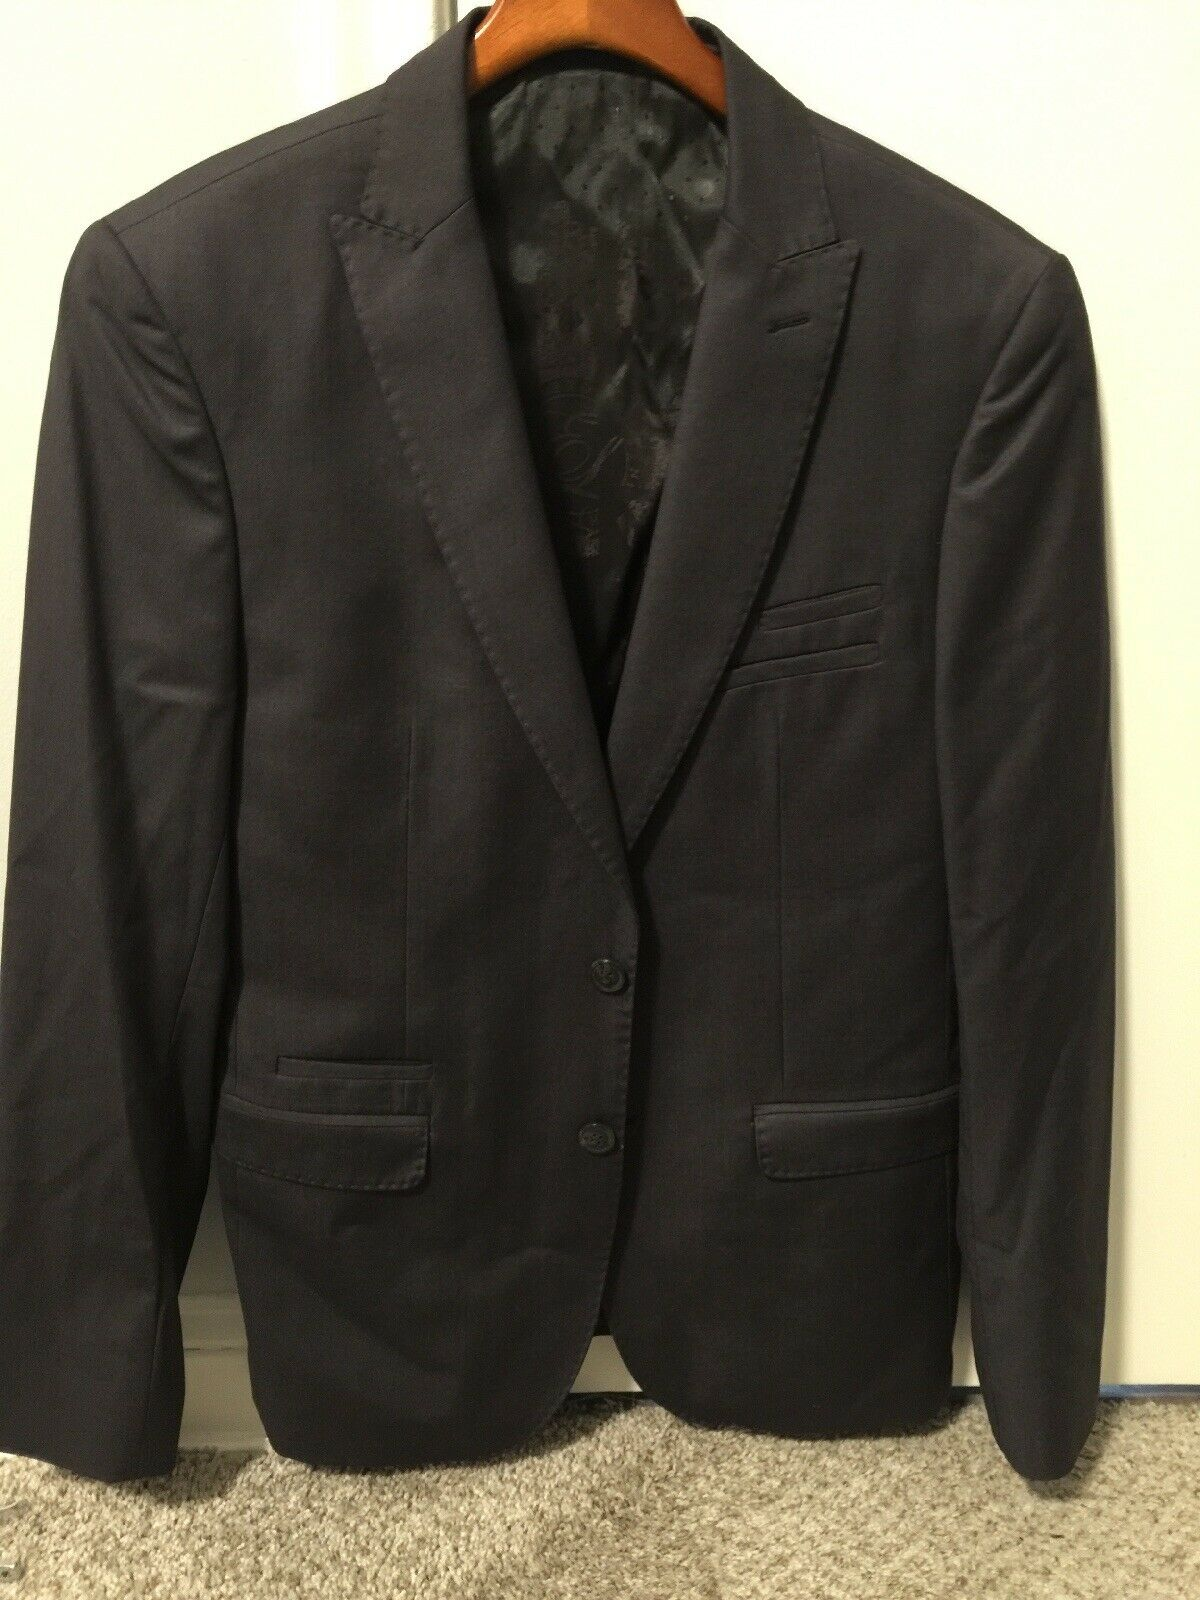 Awesome English Laundy Charcoal Grey Suit Size 38R. Great Condition